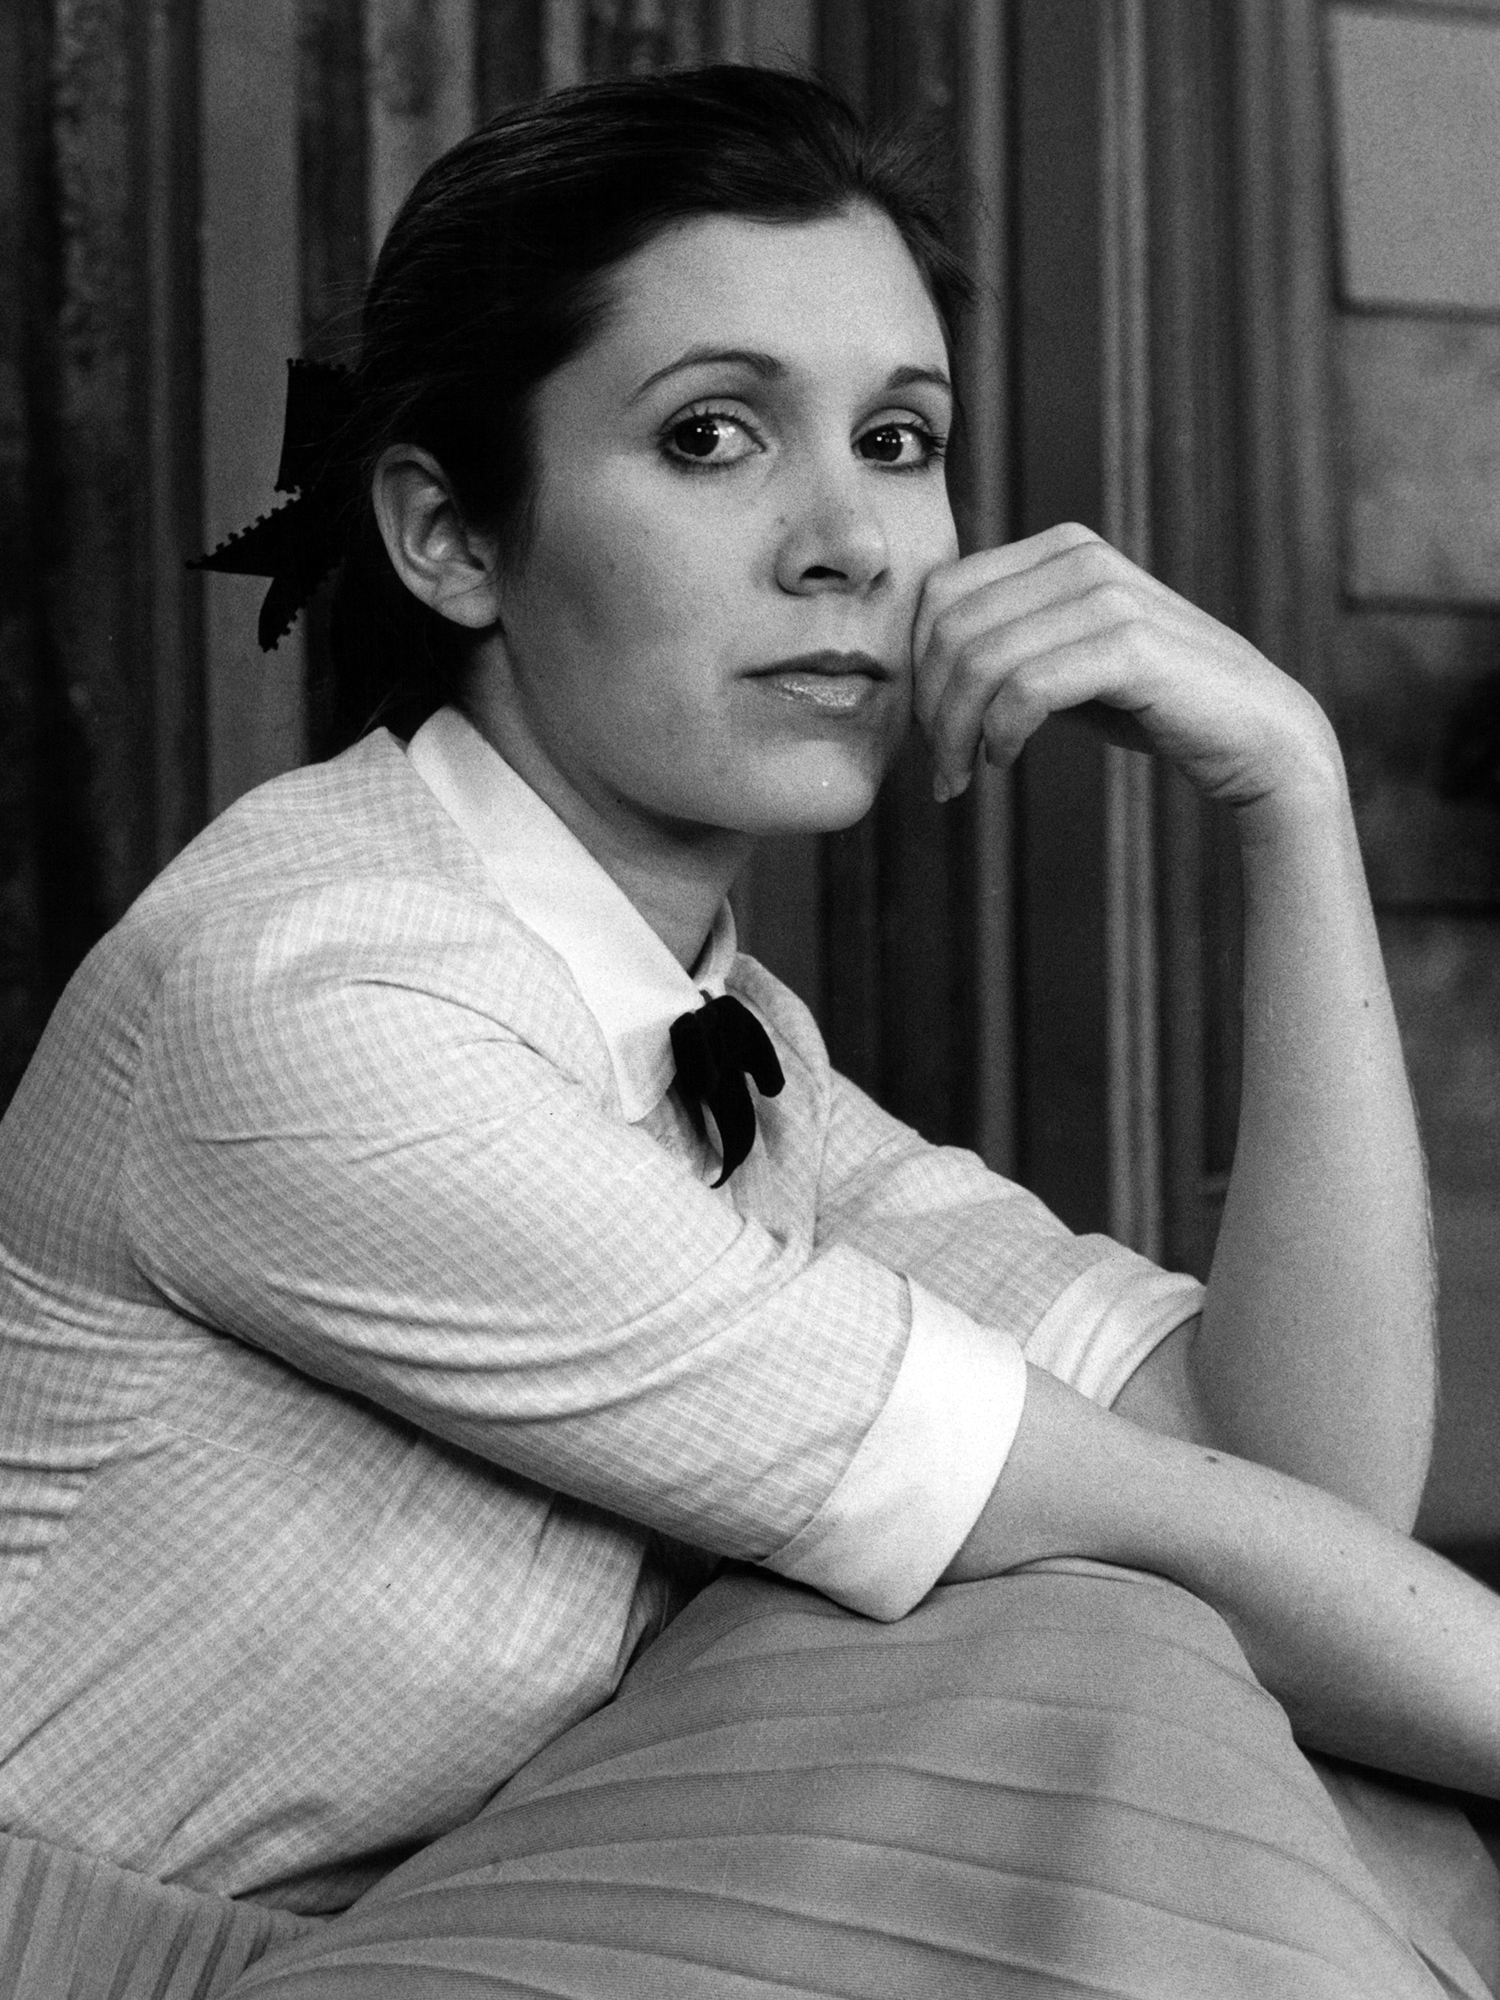 Carrie Fisher - General Leia Organa